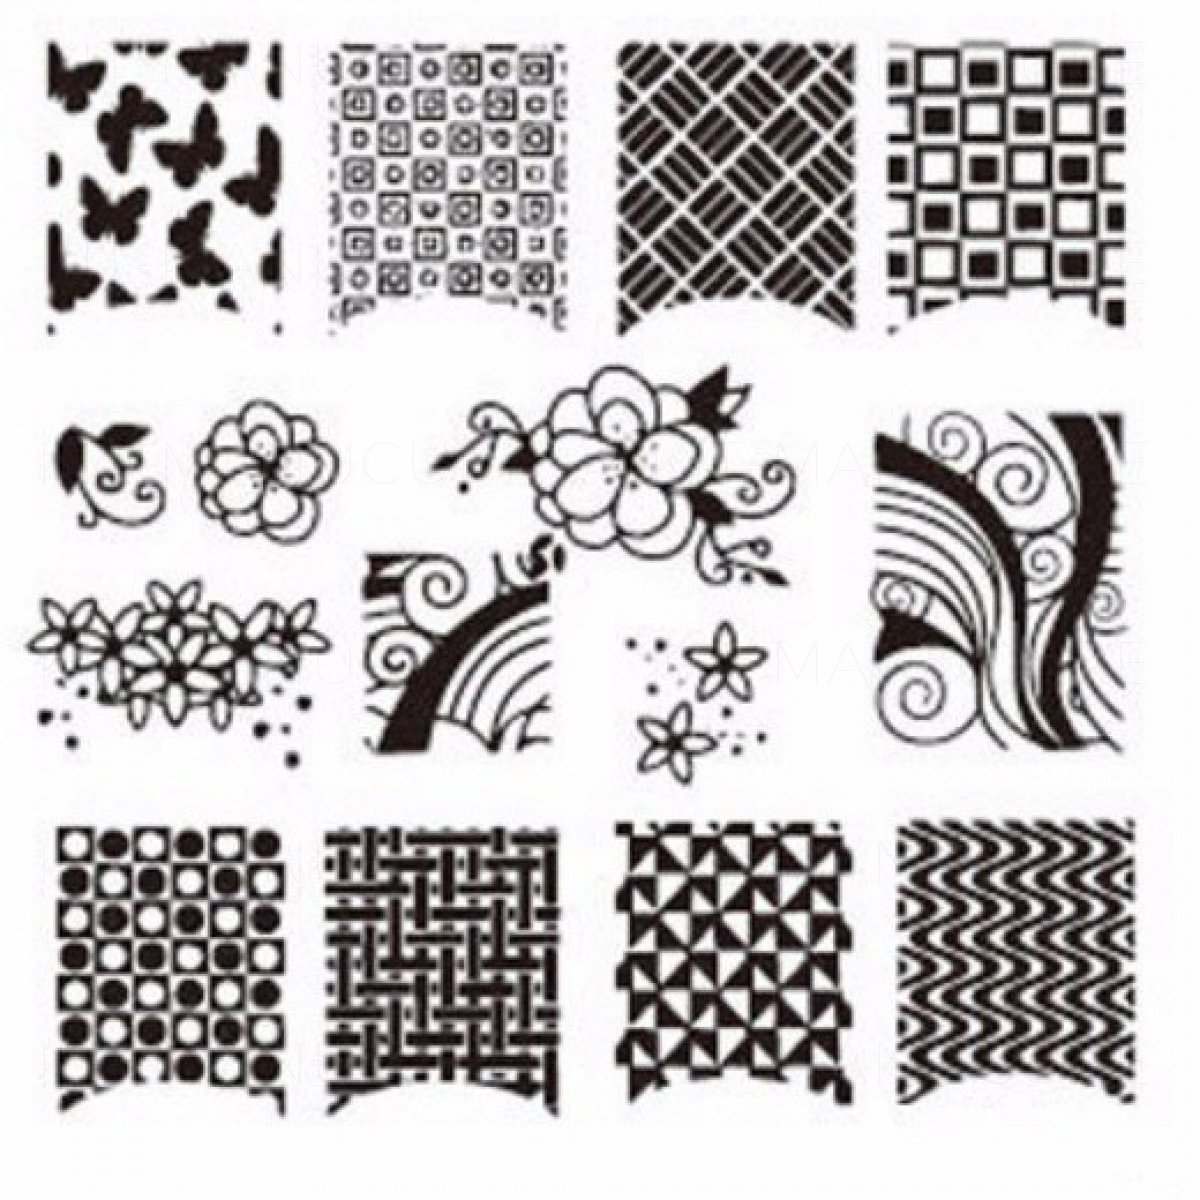 plaques de stamping motifs ann es 70 quadrillage vague losange arabesque. Black Bedroom Furniture Sets. Home Design Ideas